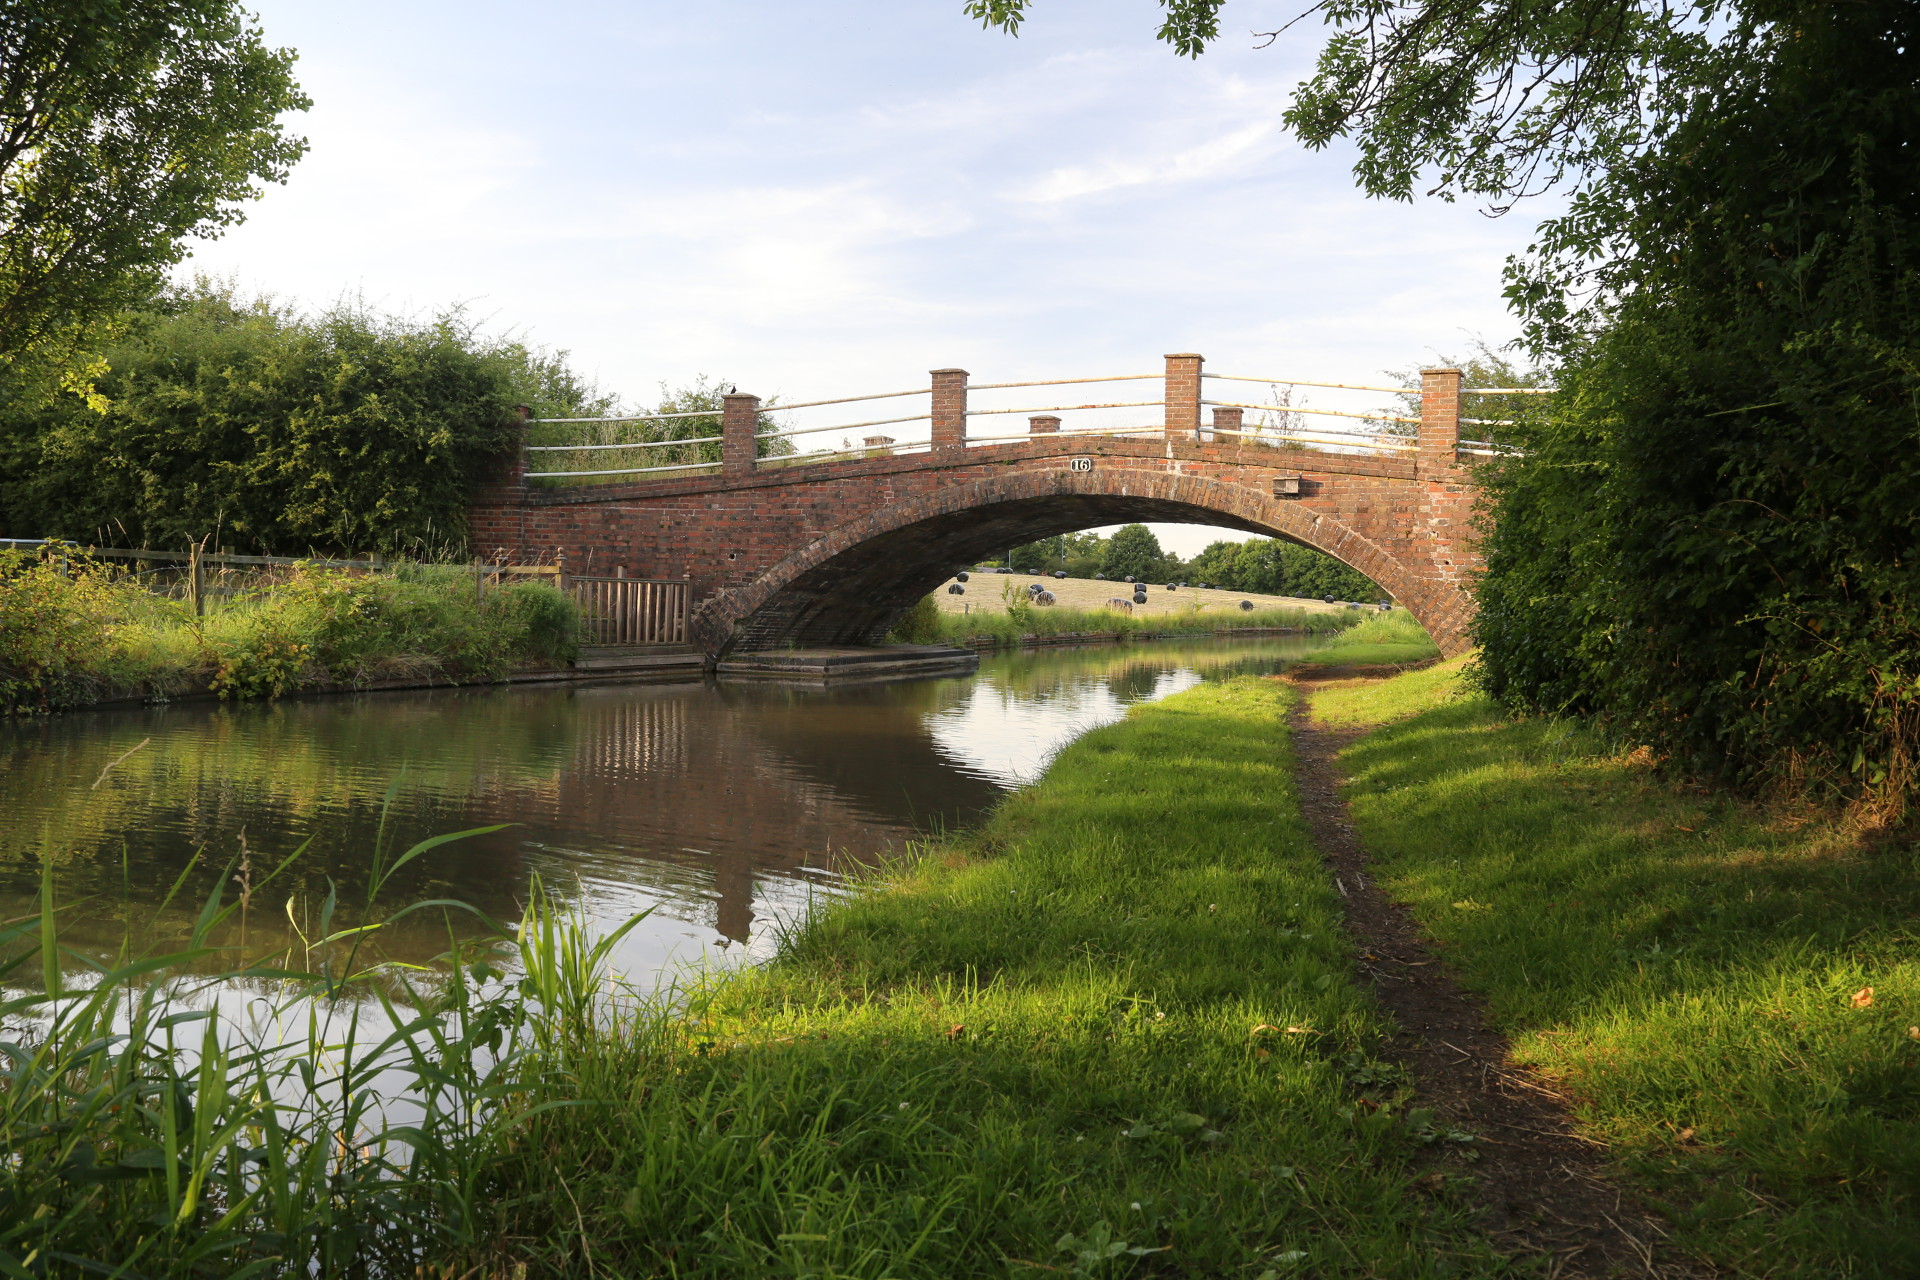 Oxford Canal at Ansty